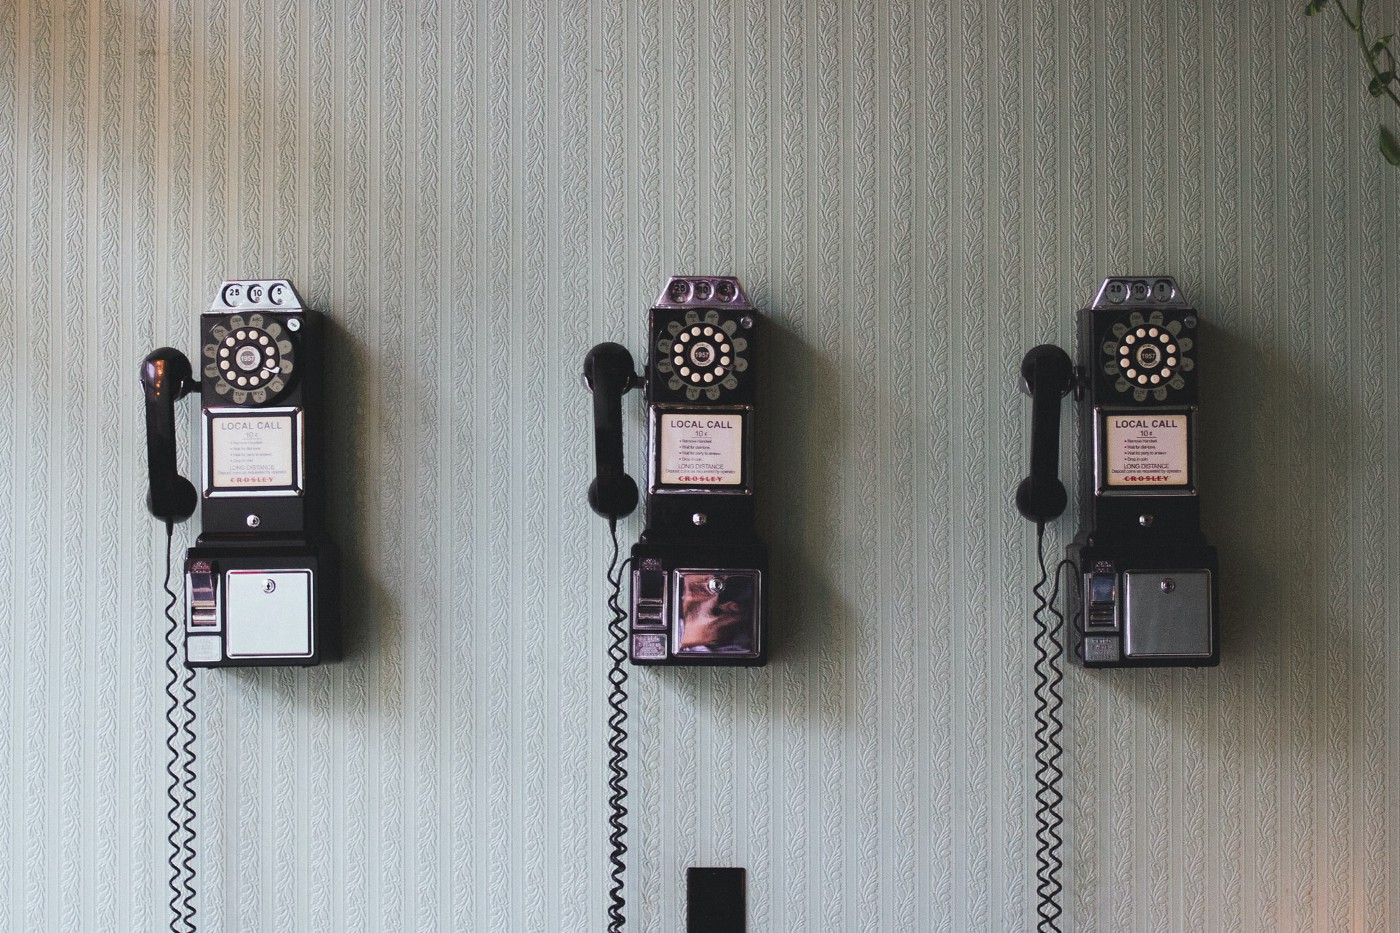 Image of three old fashioned telephones. to show gaathastory podcast production. Blog post by Amar Vyas, June 2021